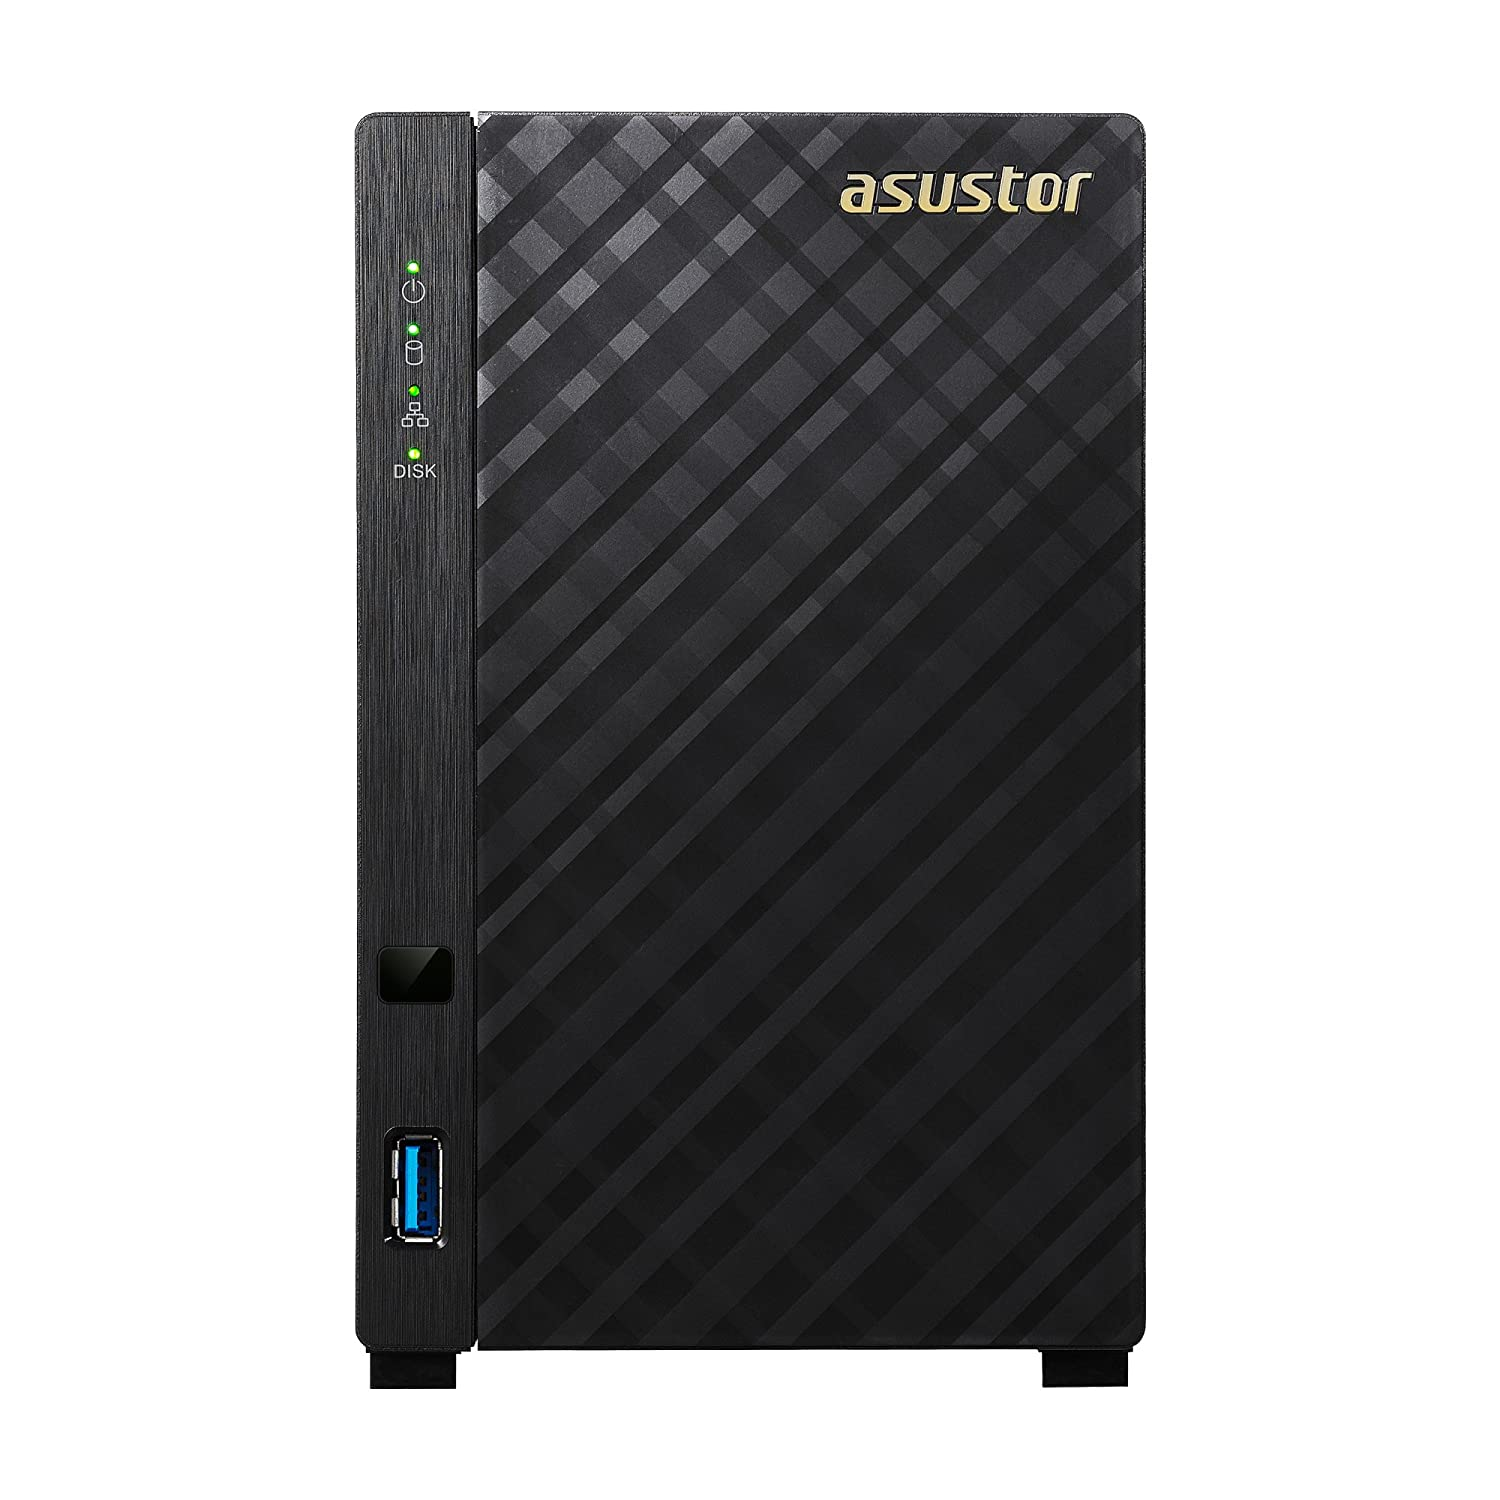 Asustor AS3102T v2 | Network Attached Storage + Free exFAT License | 1 6GHz  Dual-Core, 2GB RAM | Personal Private Cloud | Home Media Server (2 Bay